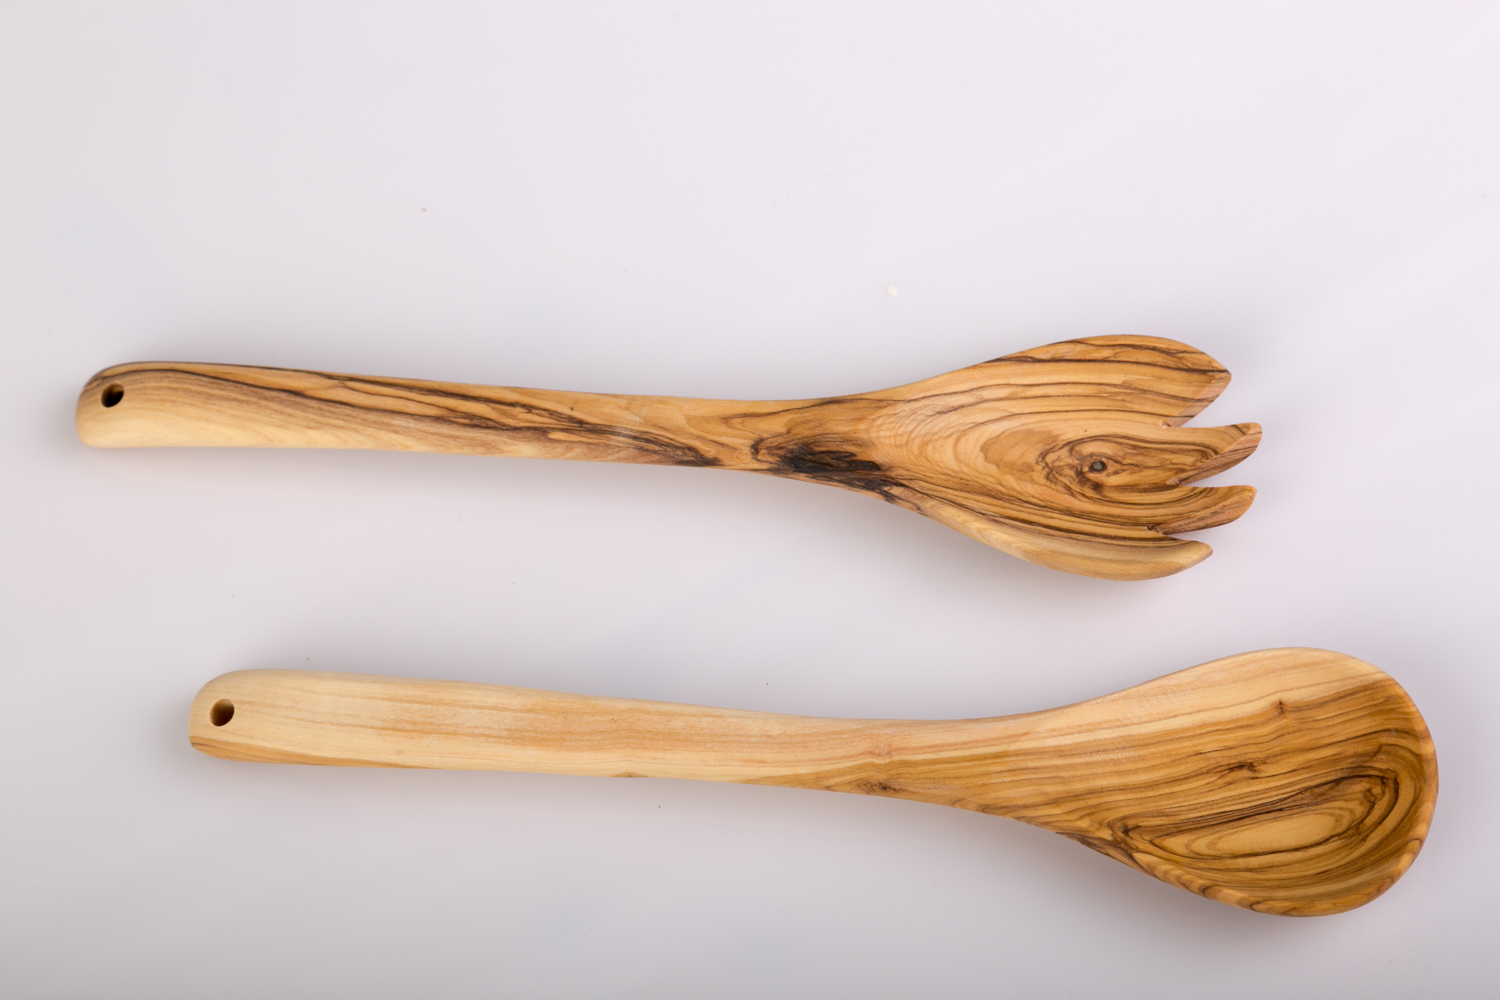 Olive wood handicraft and Ceramic handicraft